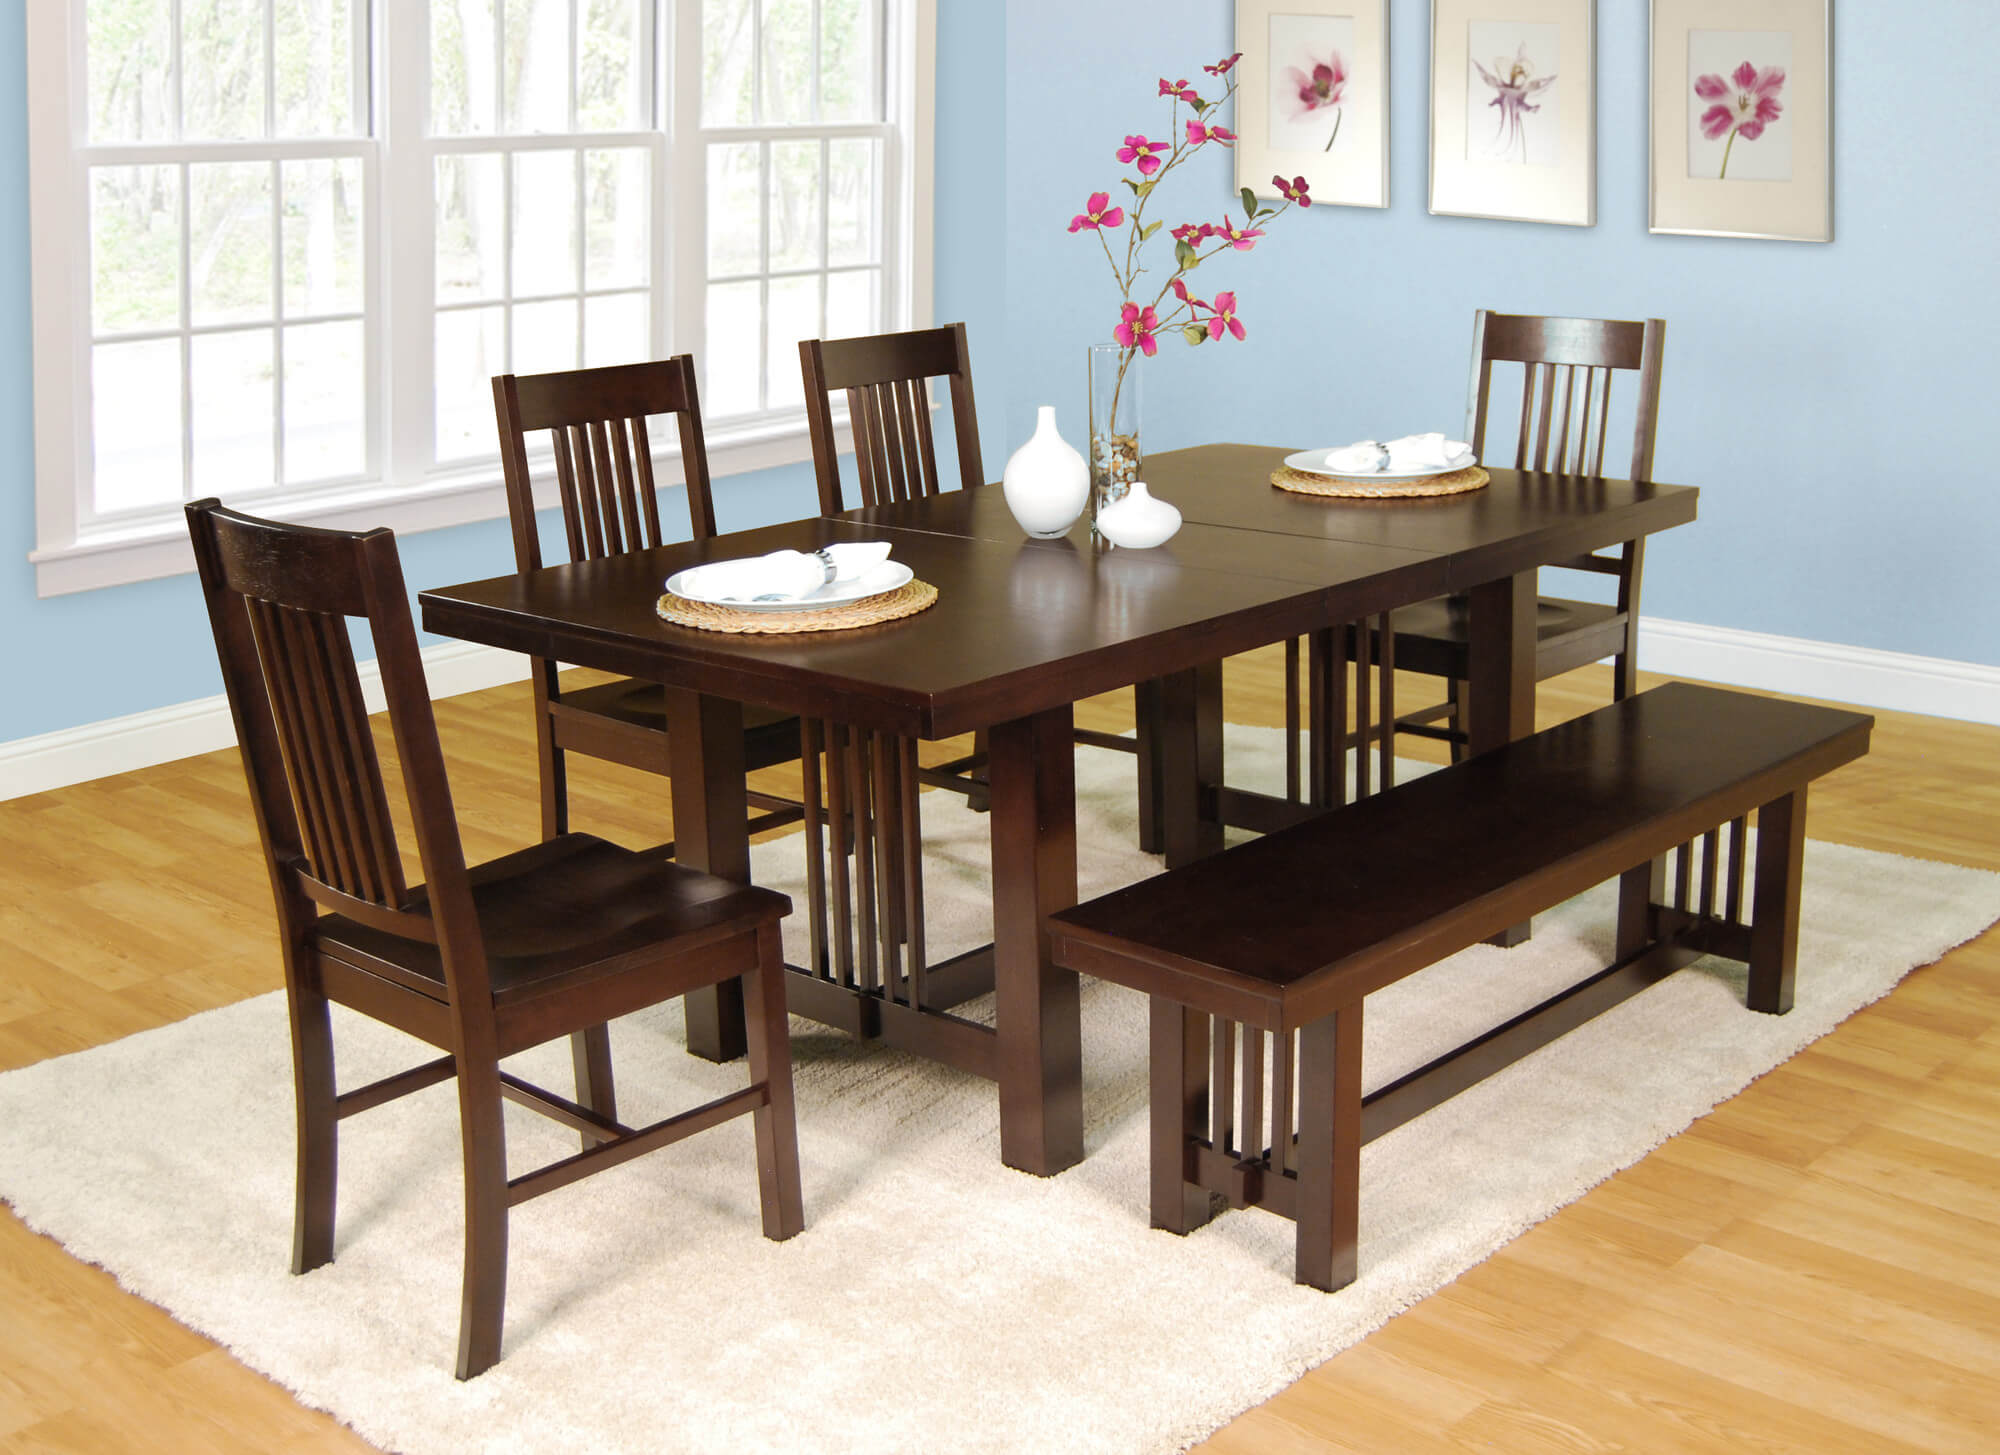 dining room sets bench seating small kitchen tables Here s a very solid dining set with bench Table can be extended with a center